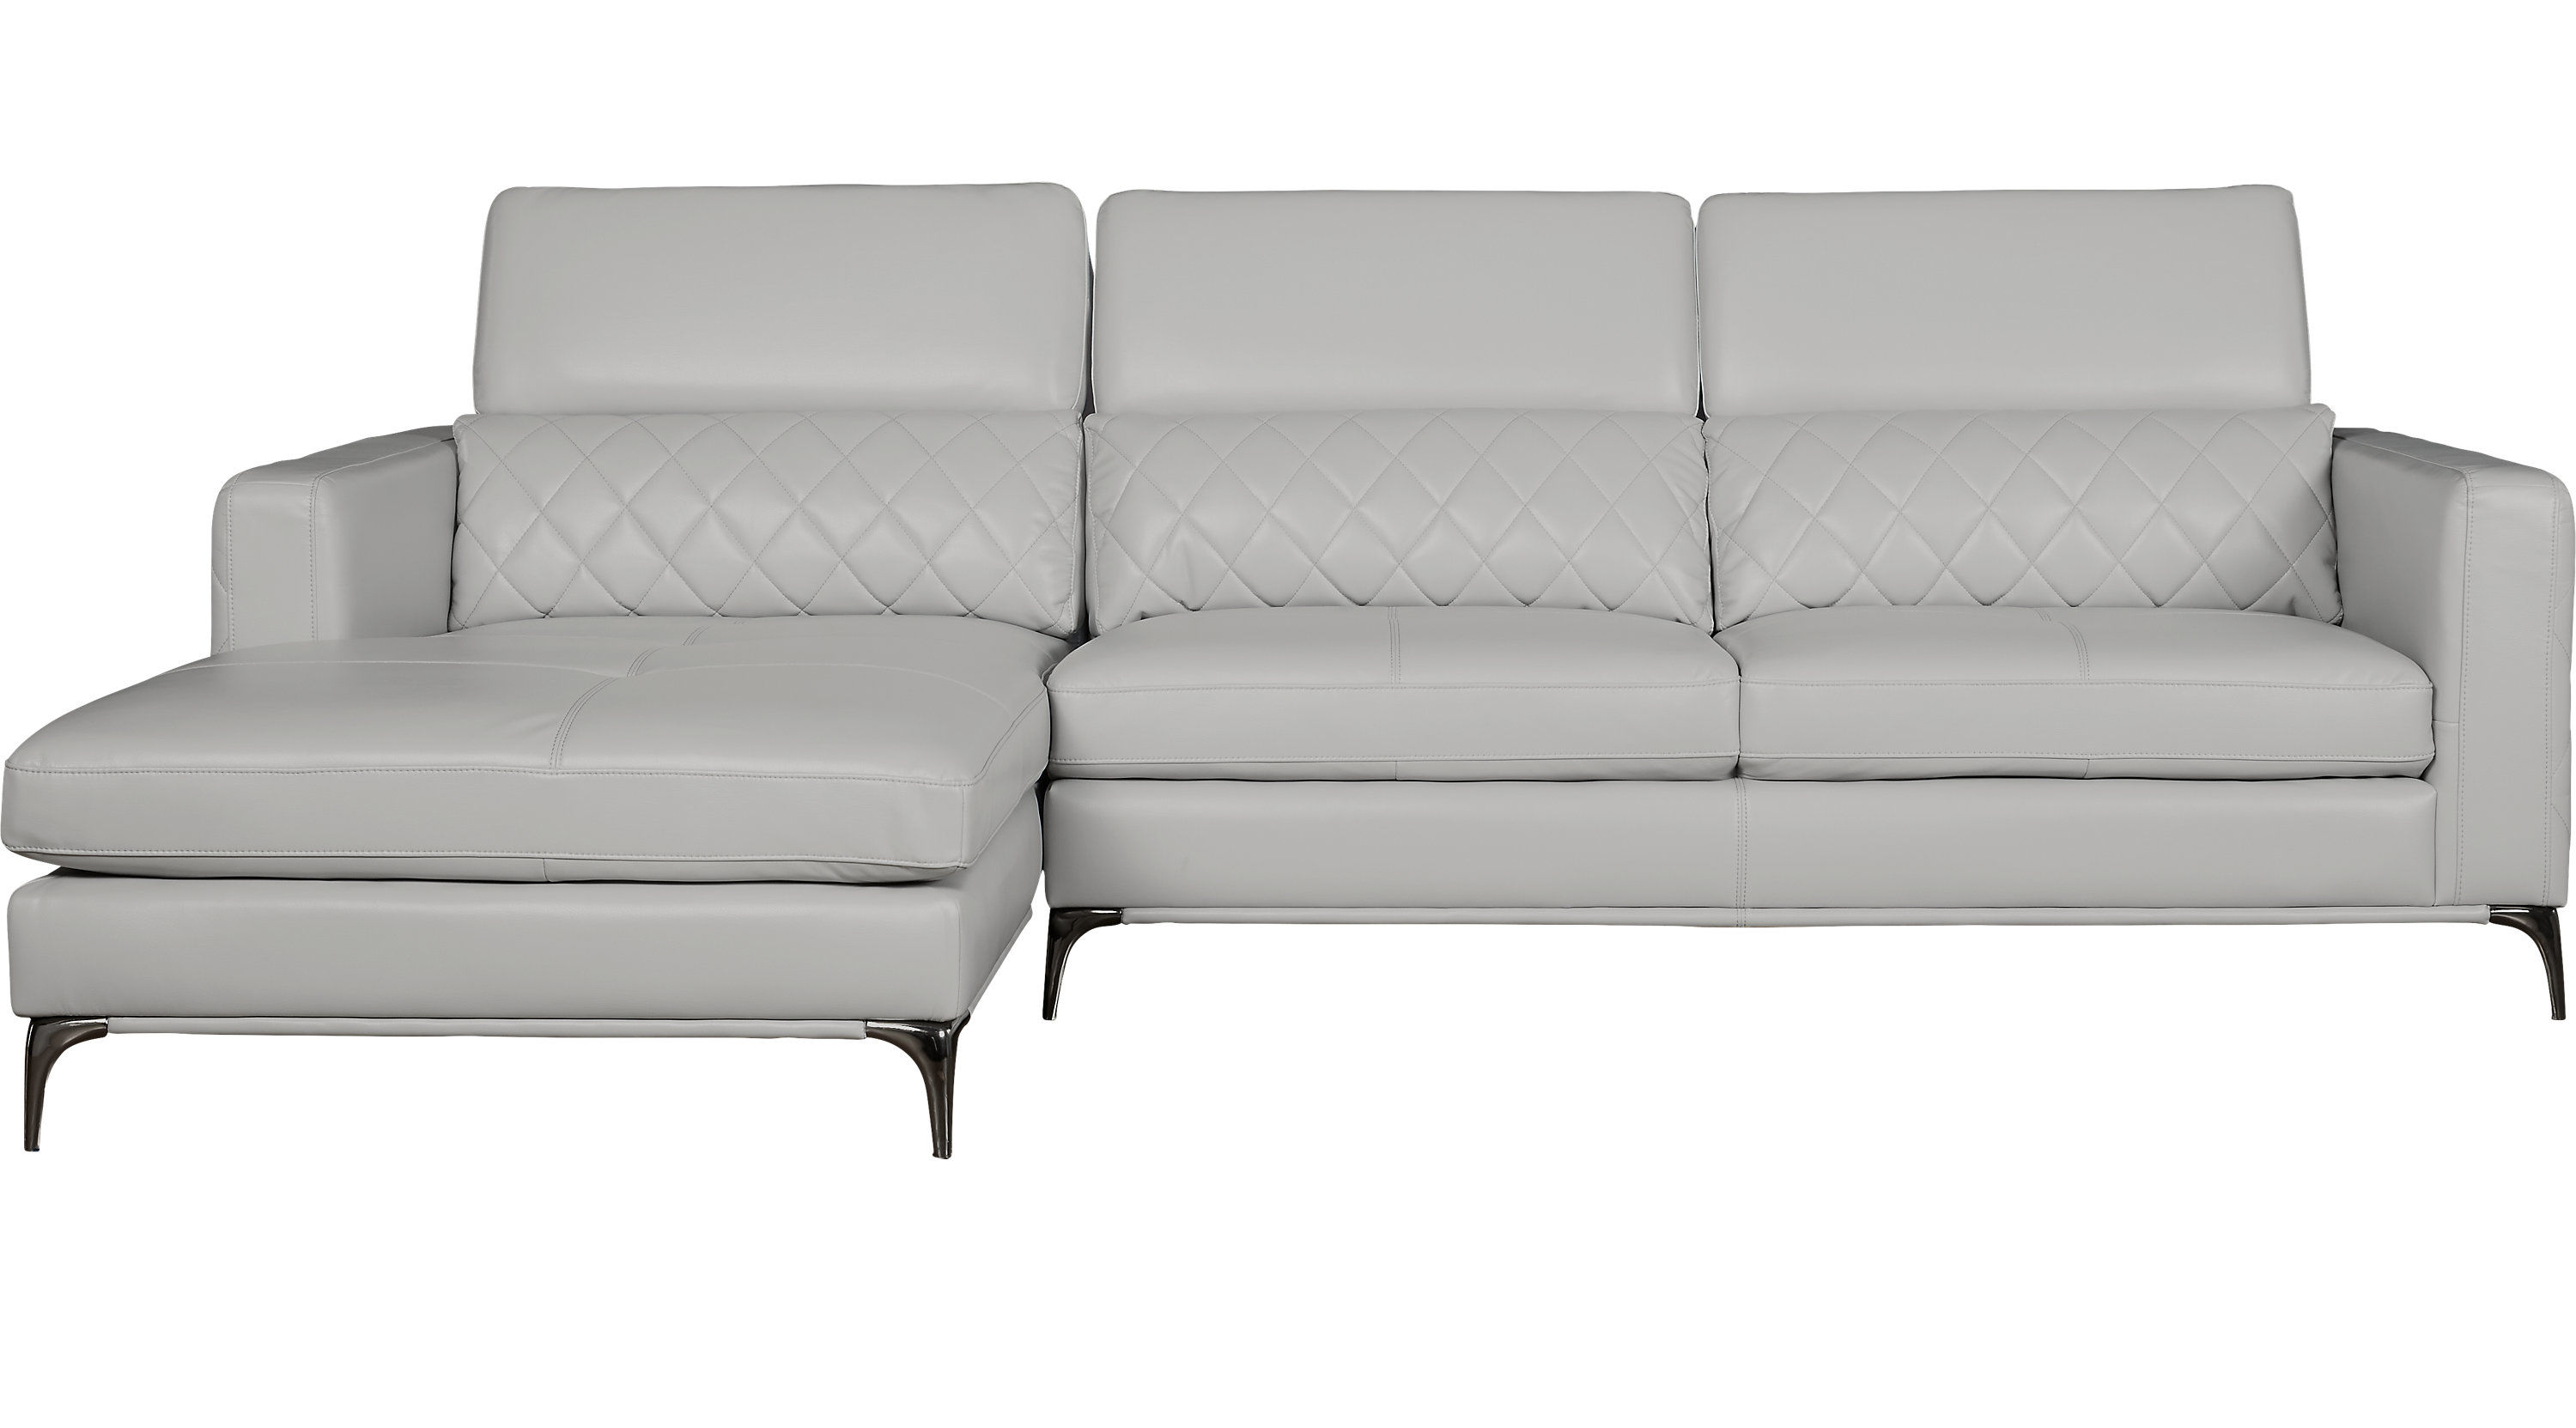 best sofia vergara sofa collection ideas-Finest sofia Vergara sofa Collection Collection